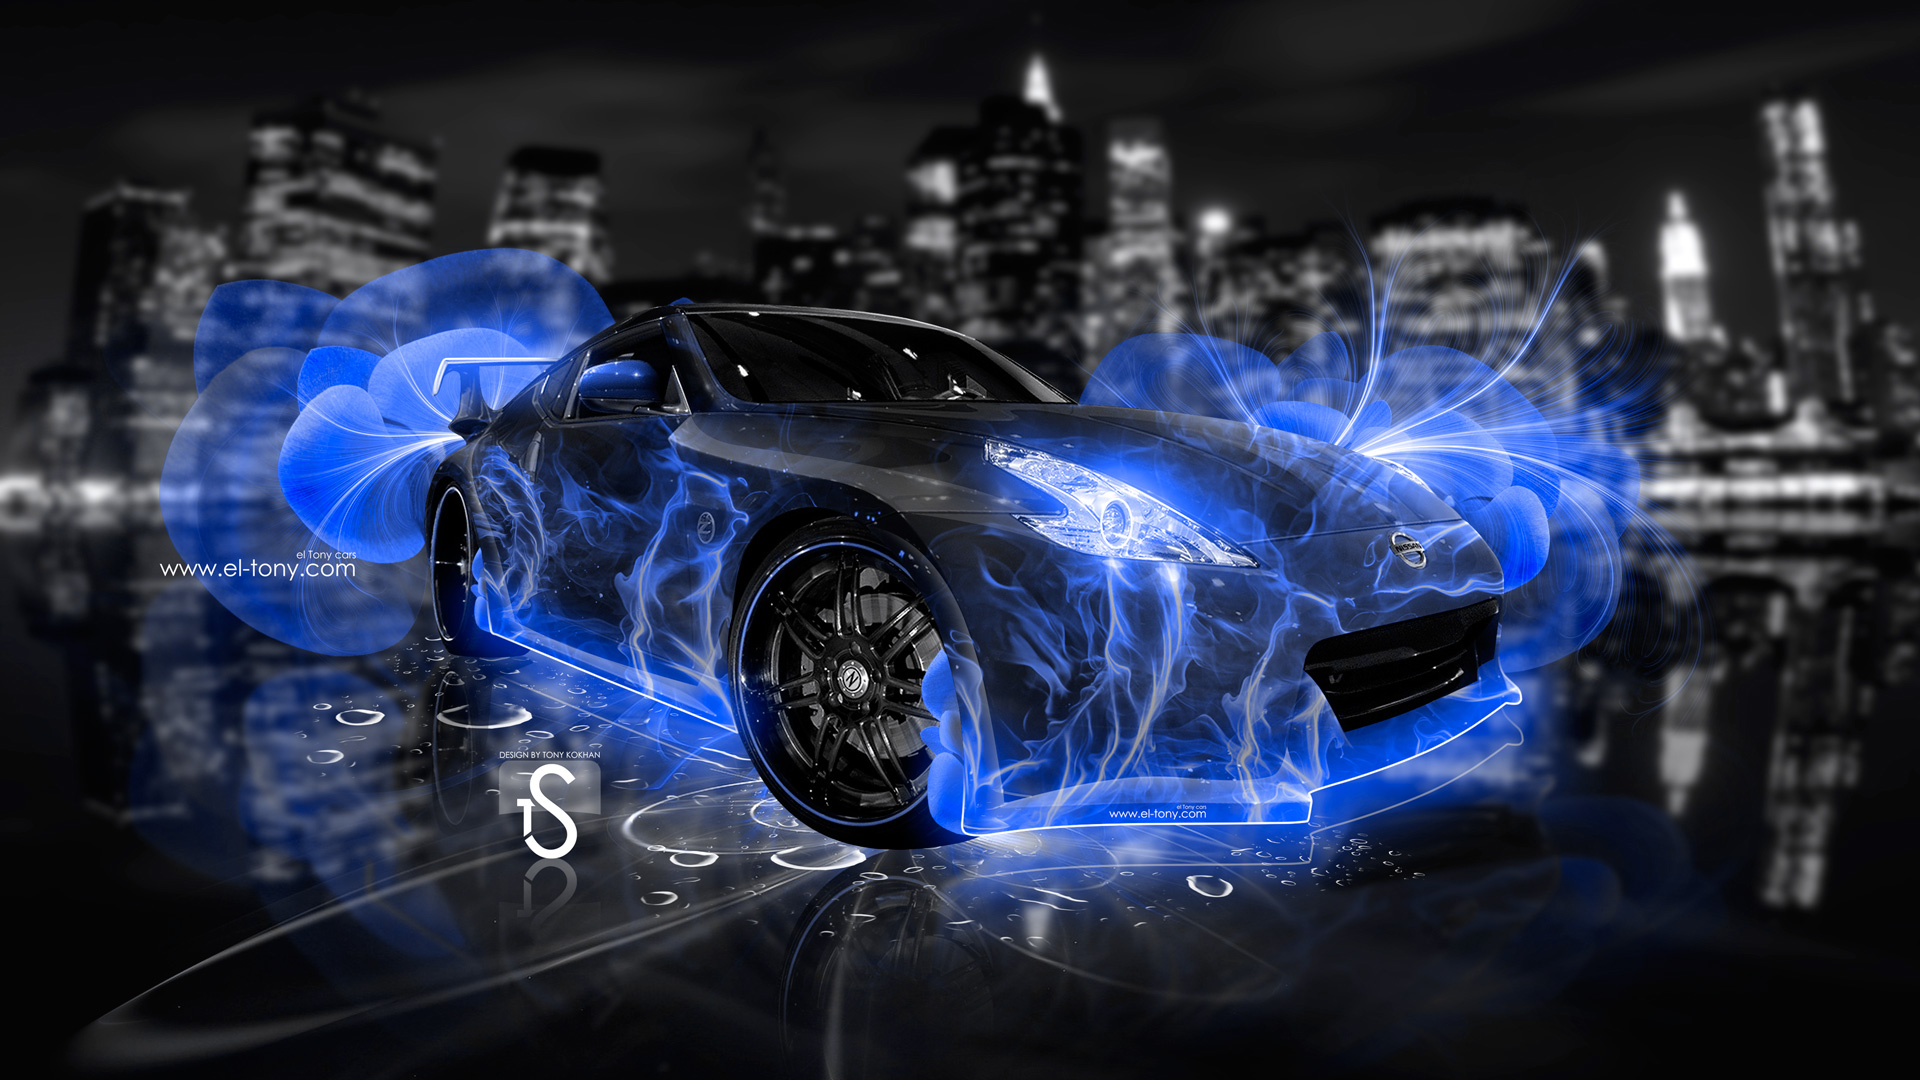 Charmant Emerg E Abstract Violet Neon Car 2013 Hd Wallpapers Design By Tony Car .